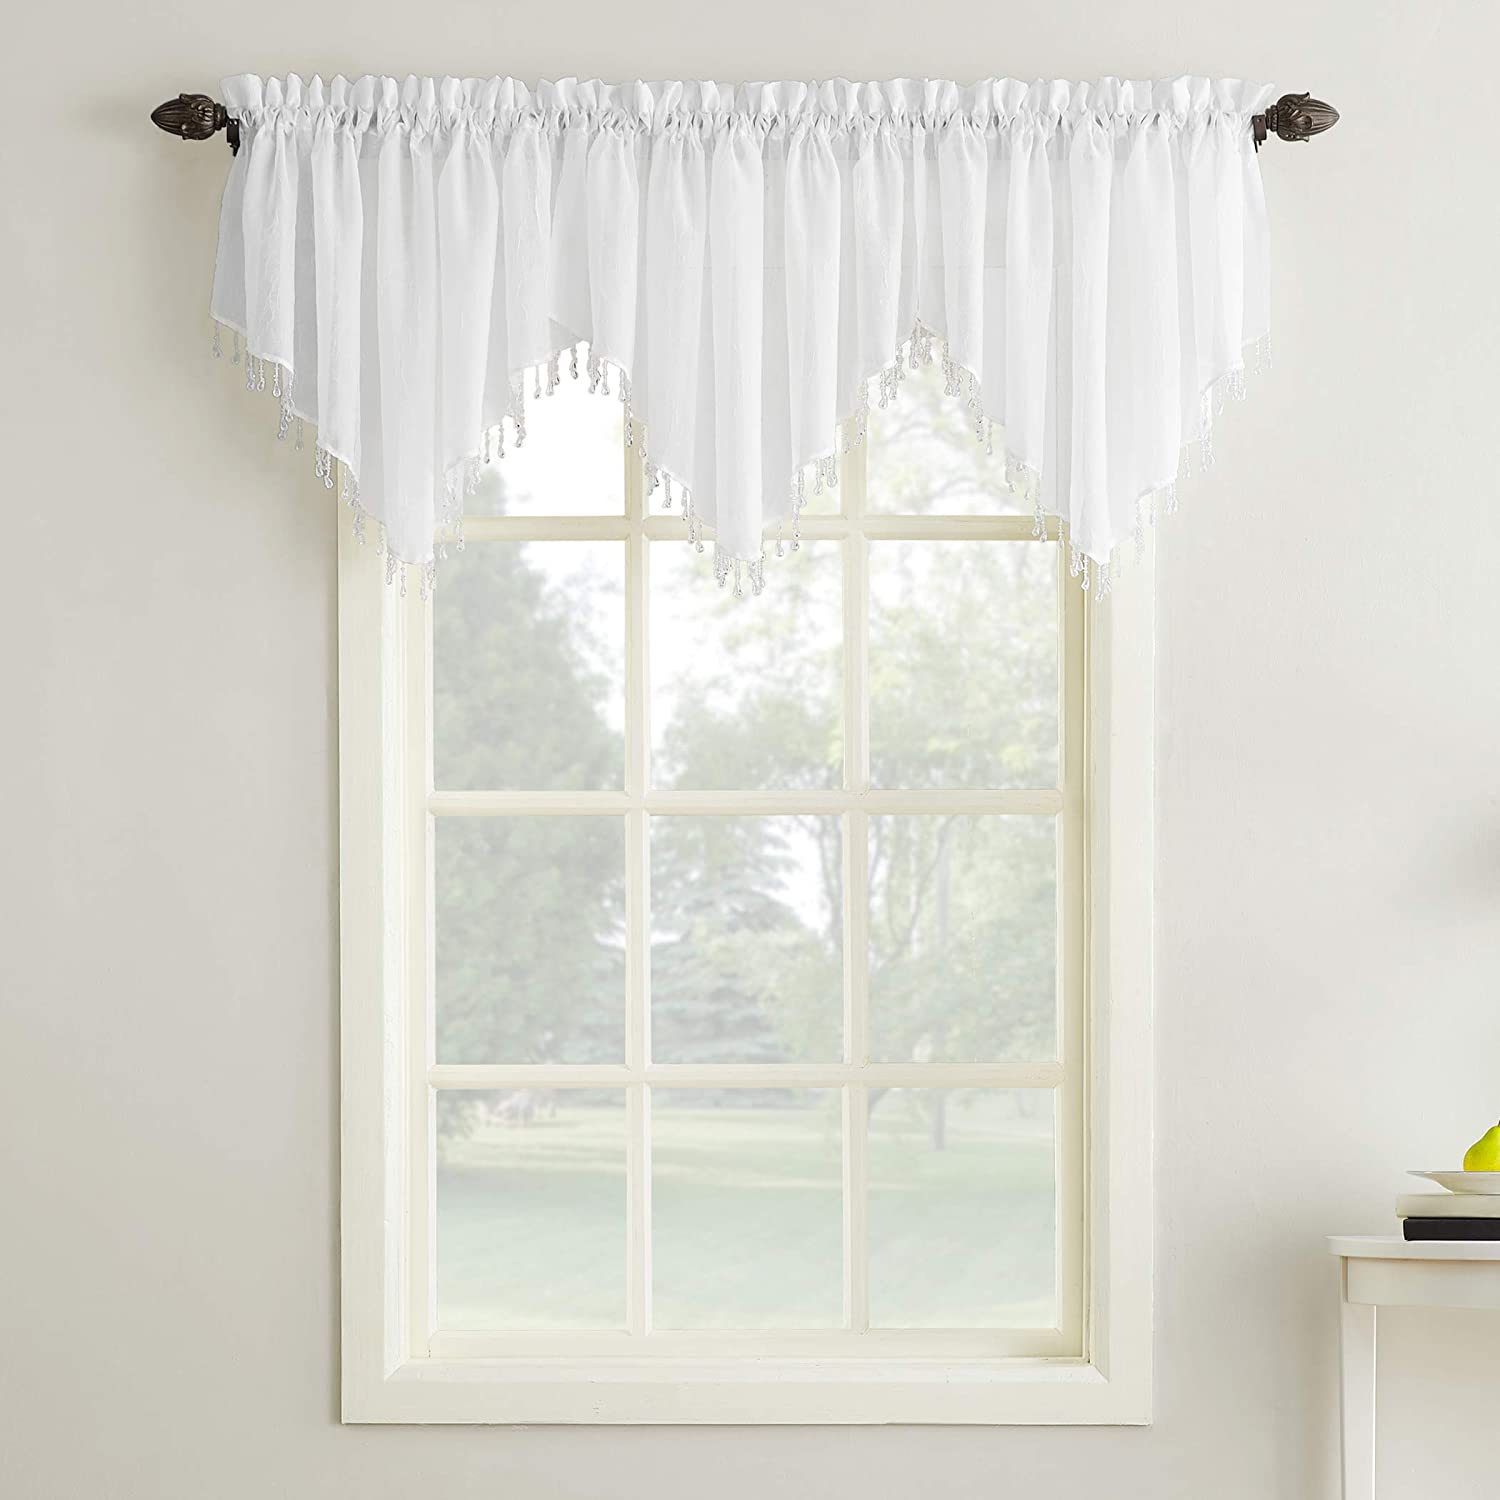 """No. 918 Erica Crushed Sheer Voile Ascot Beaded Curtain Valance, 51"""" x 24"""", White"""